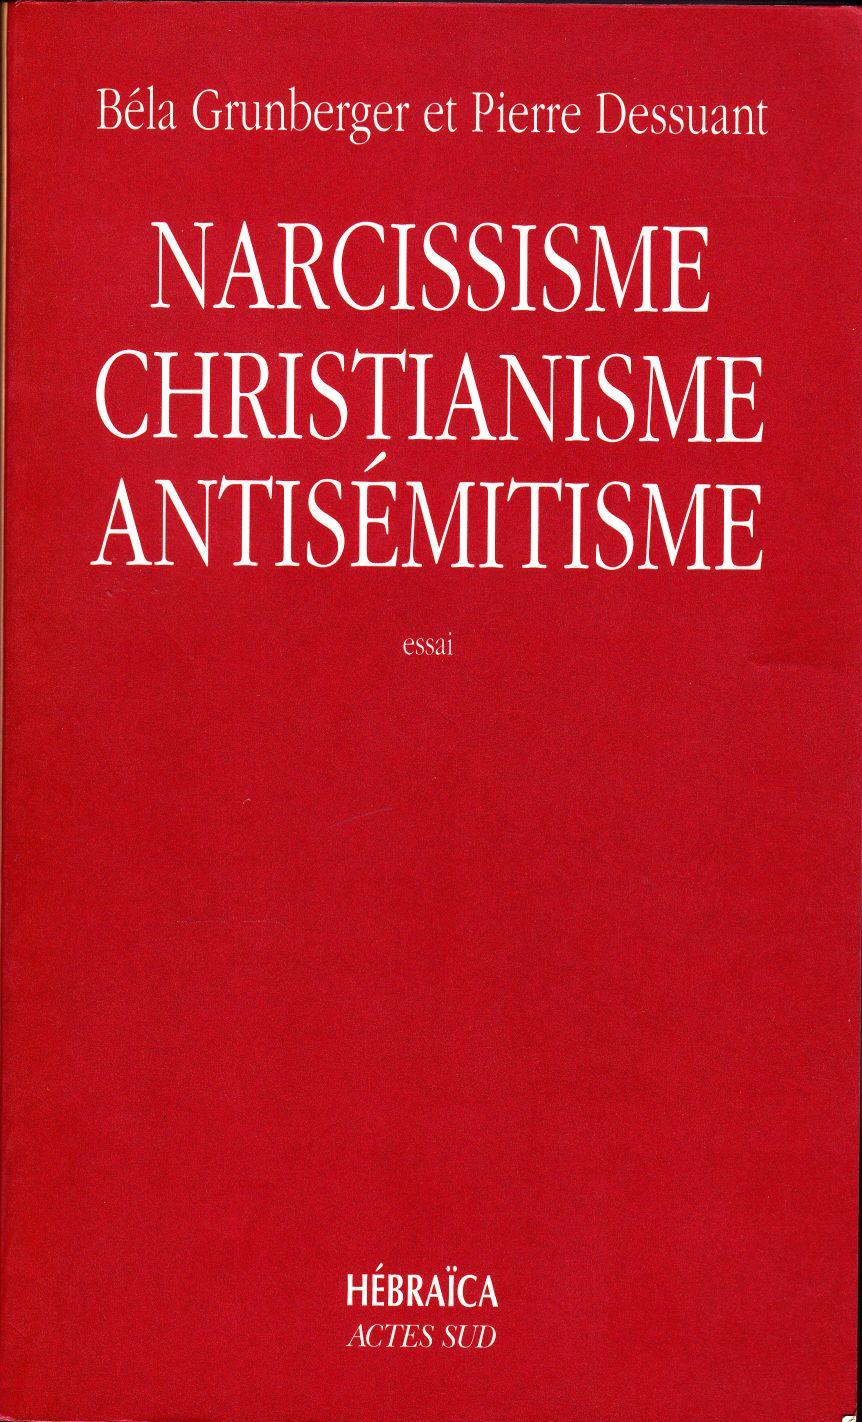 Narcissisme, christianisme, antisémitisme.